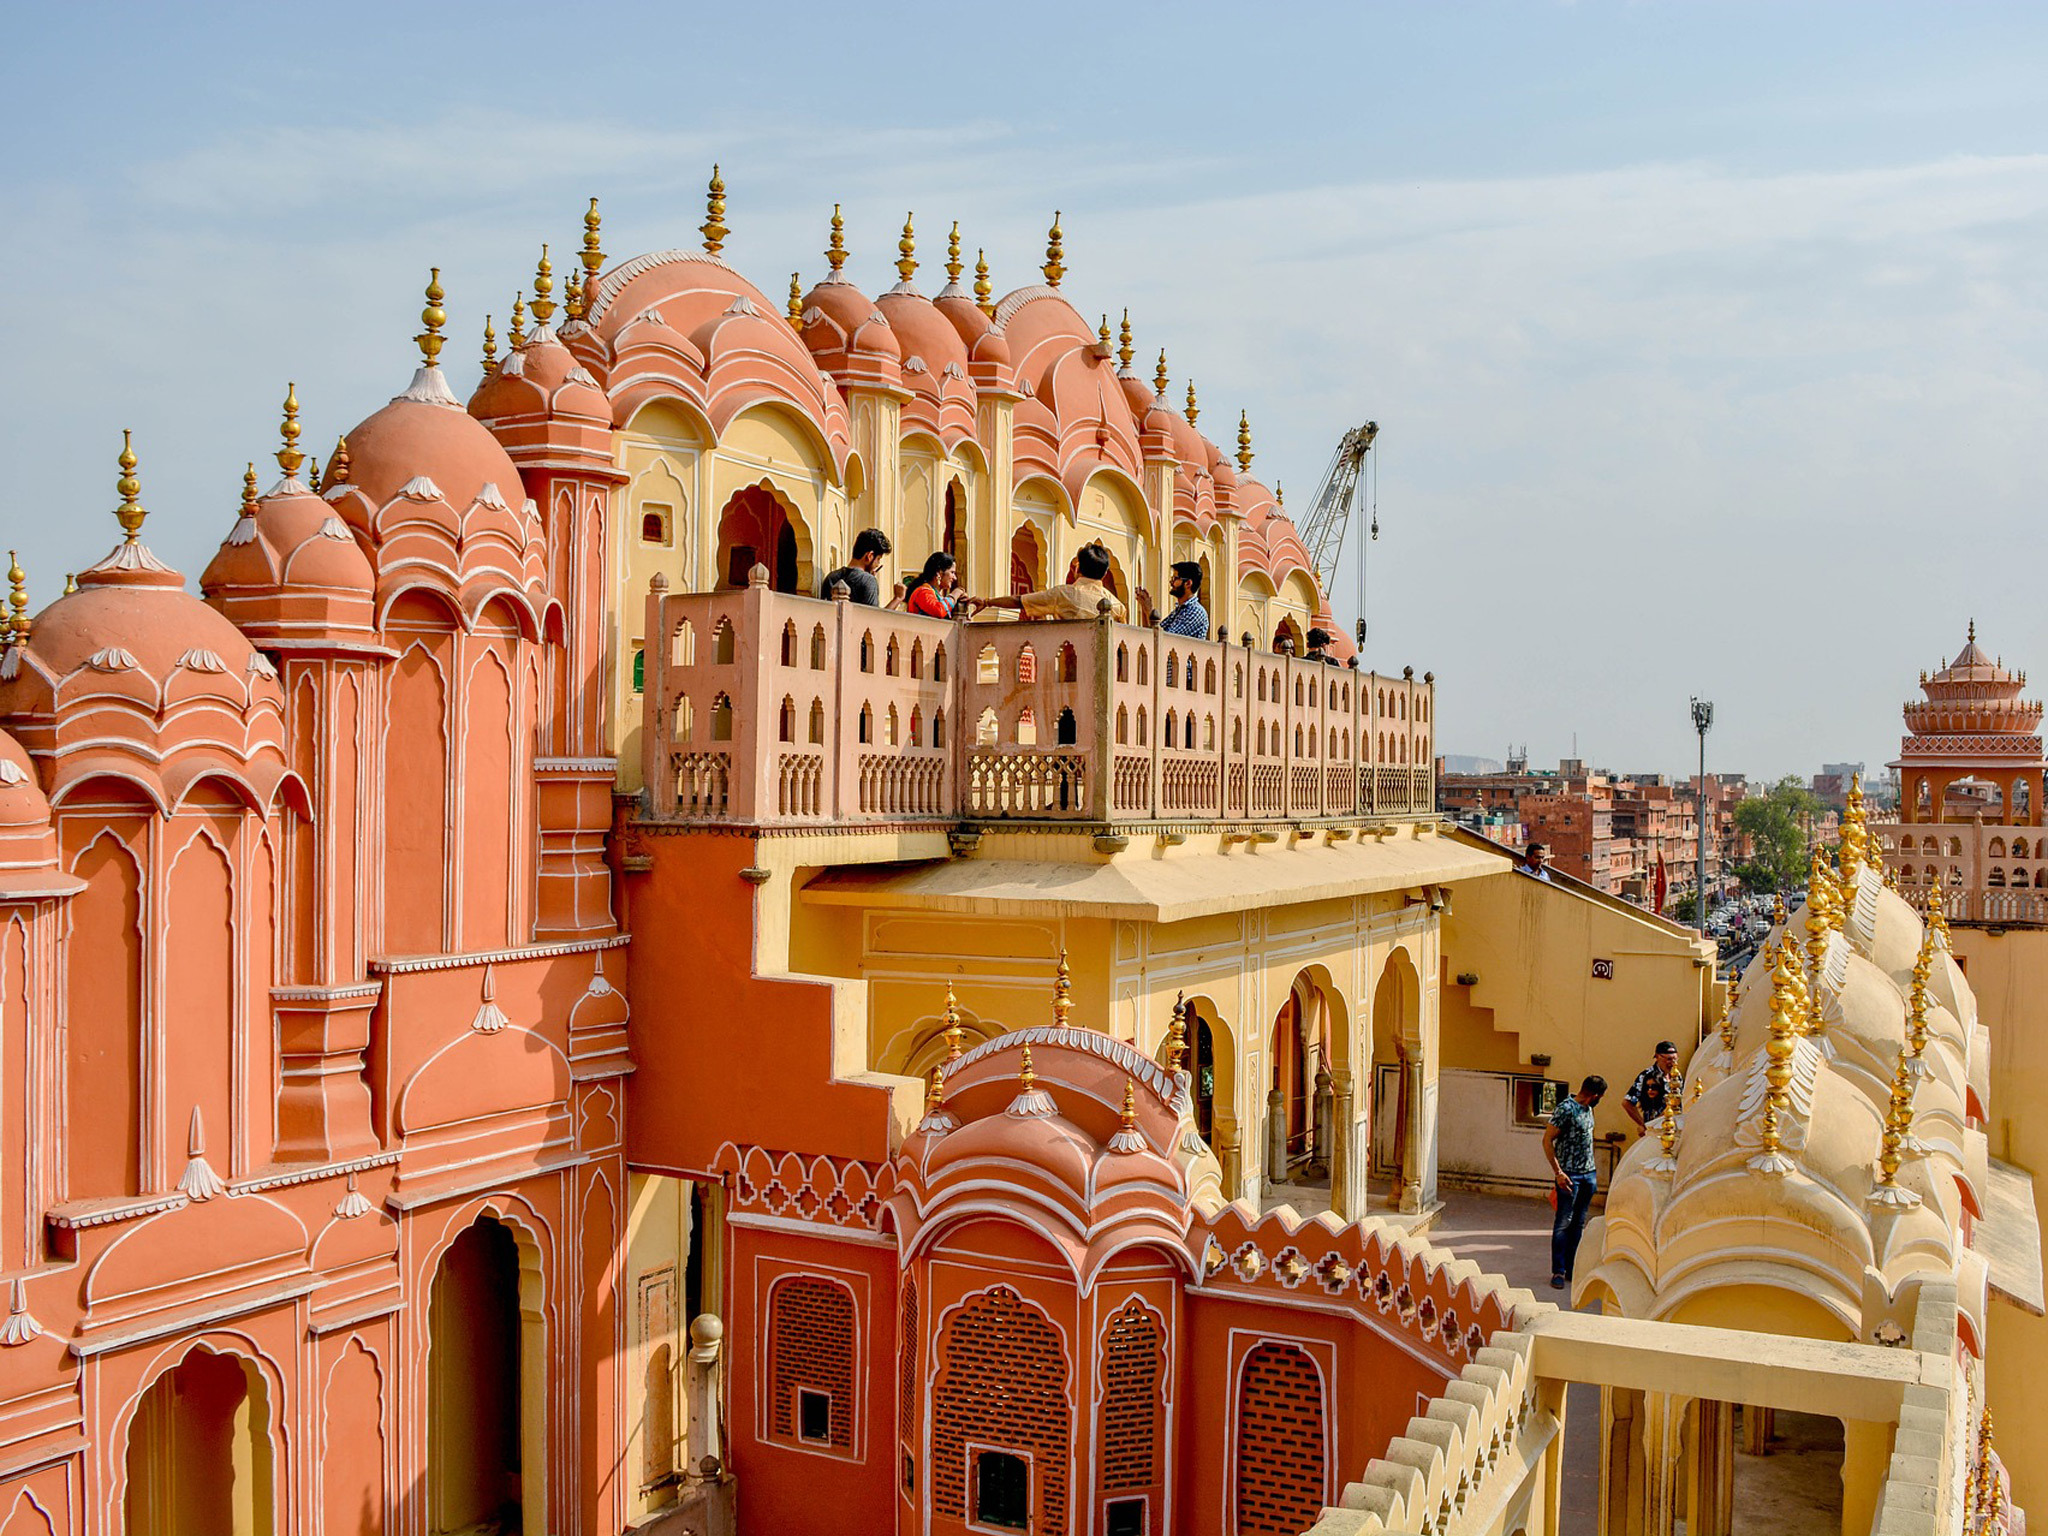 A view over the rooftops of Jaipur